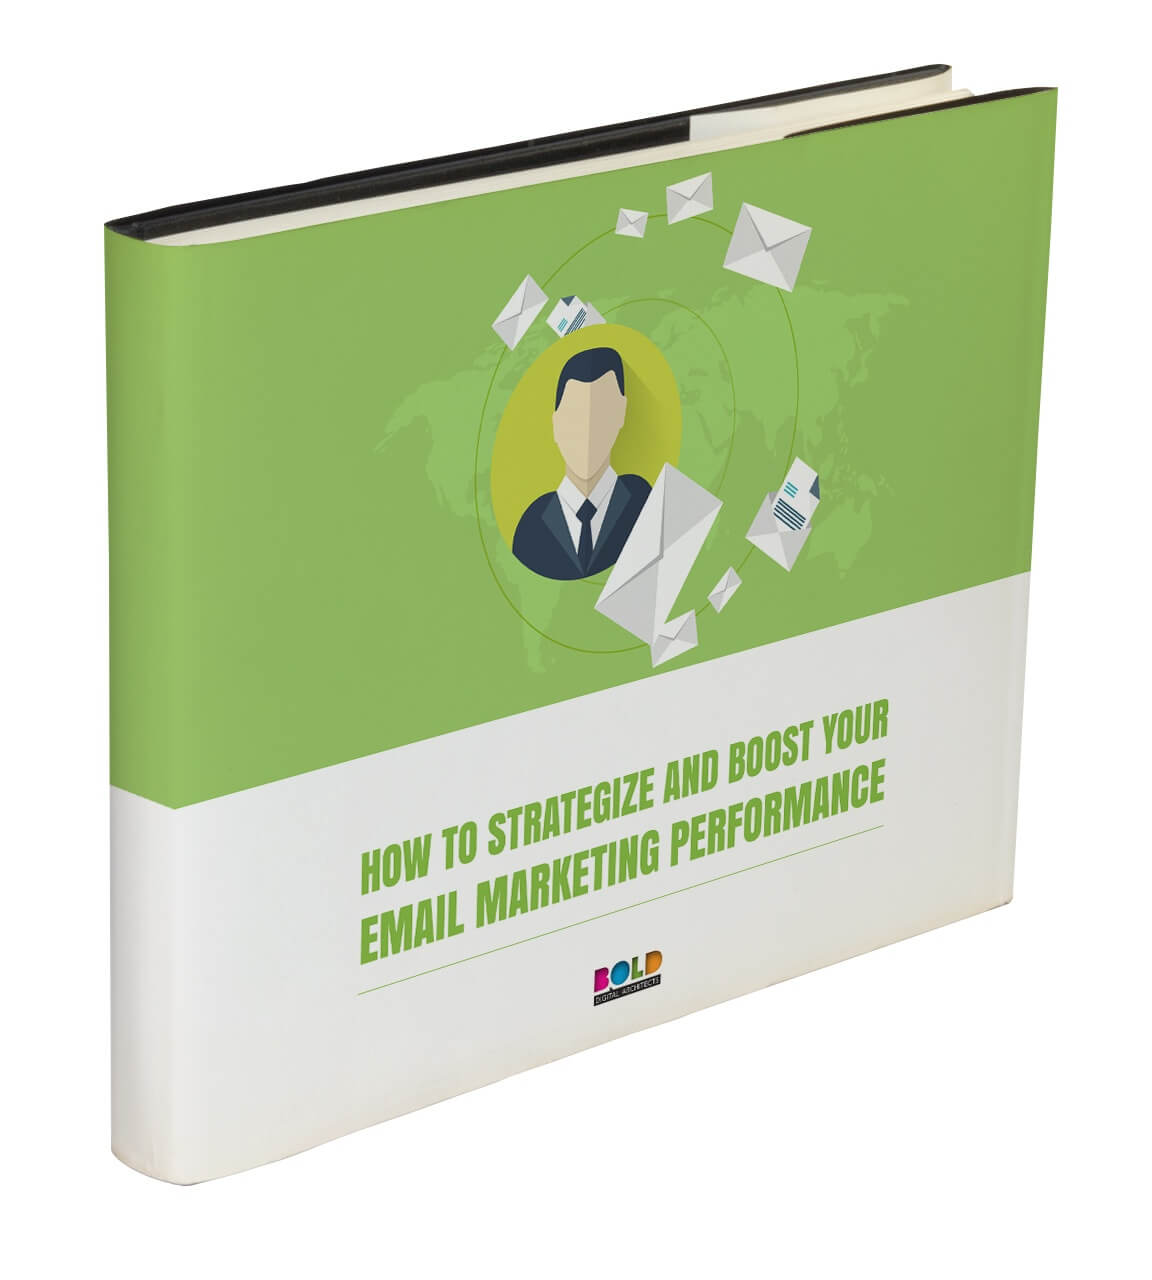 How To Strategize And Boost Your Email Marketing Performance